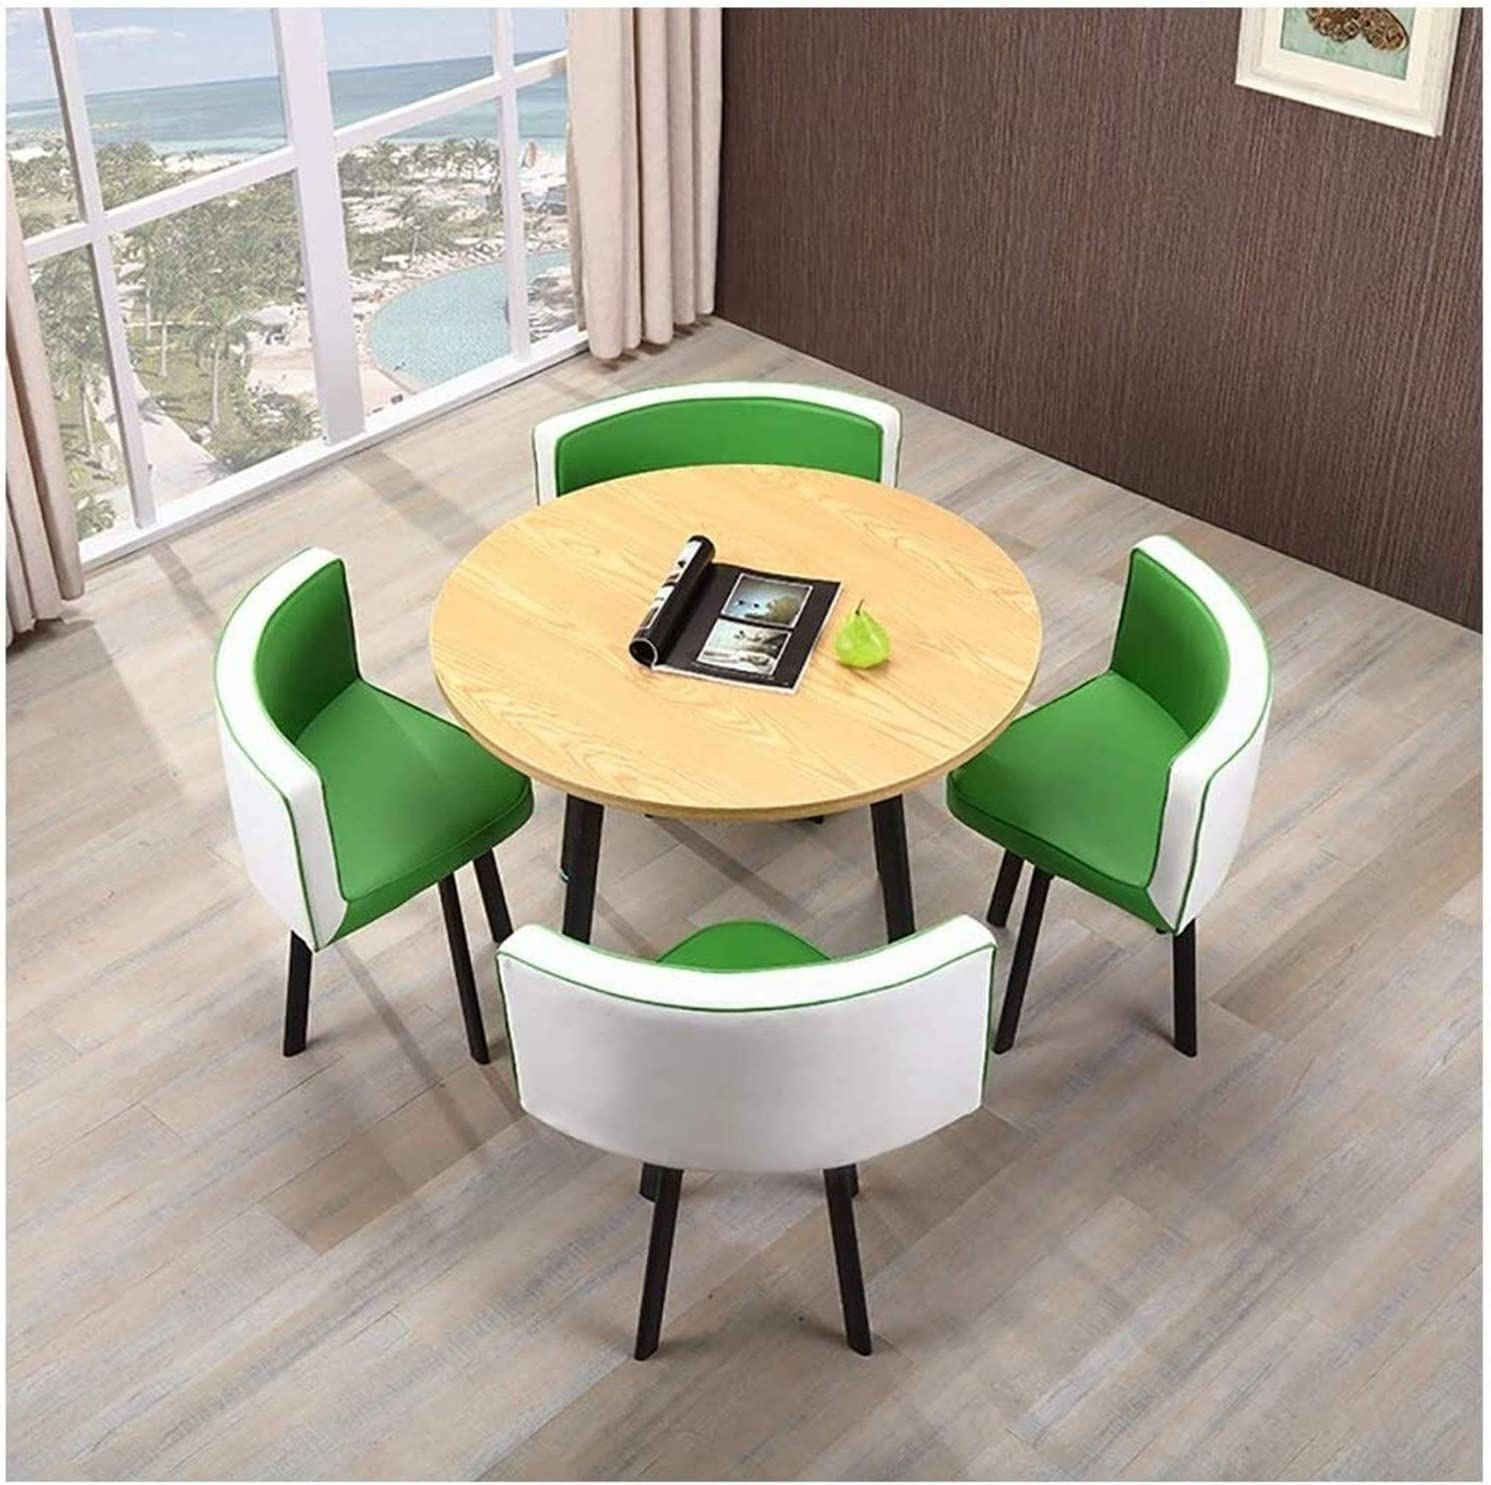 Round Dedication dining table and Memphis Mall chair set Table Recept Small Simple